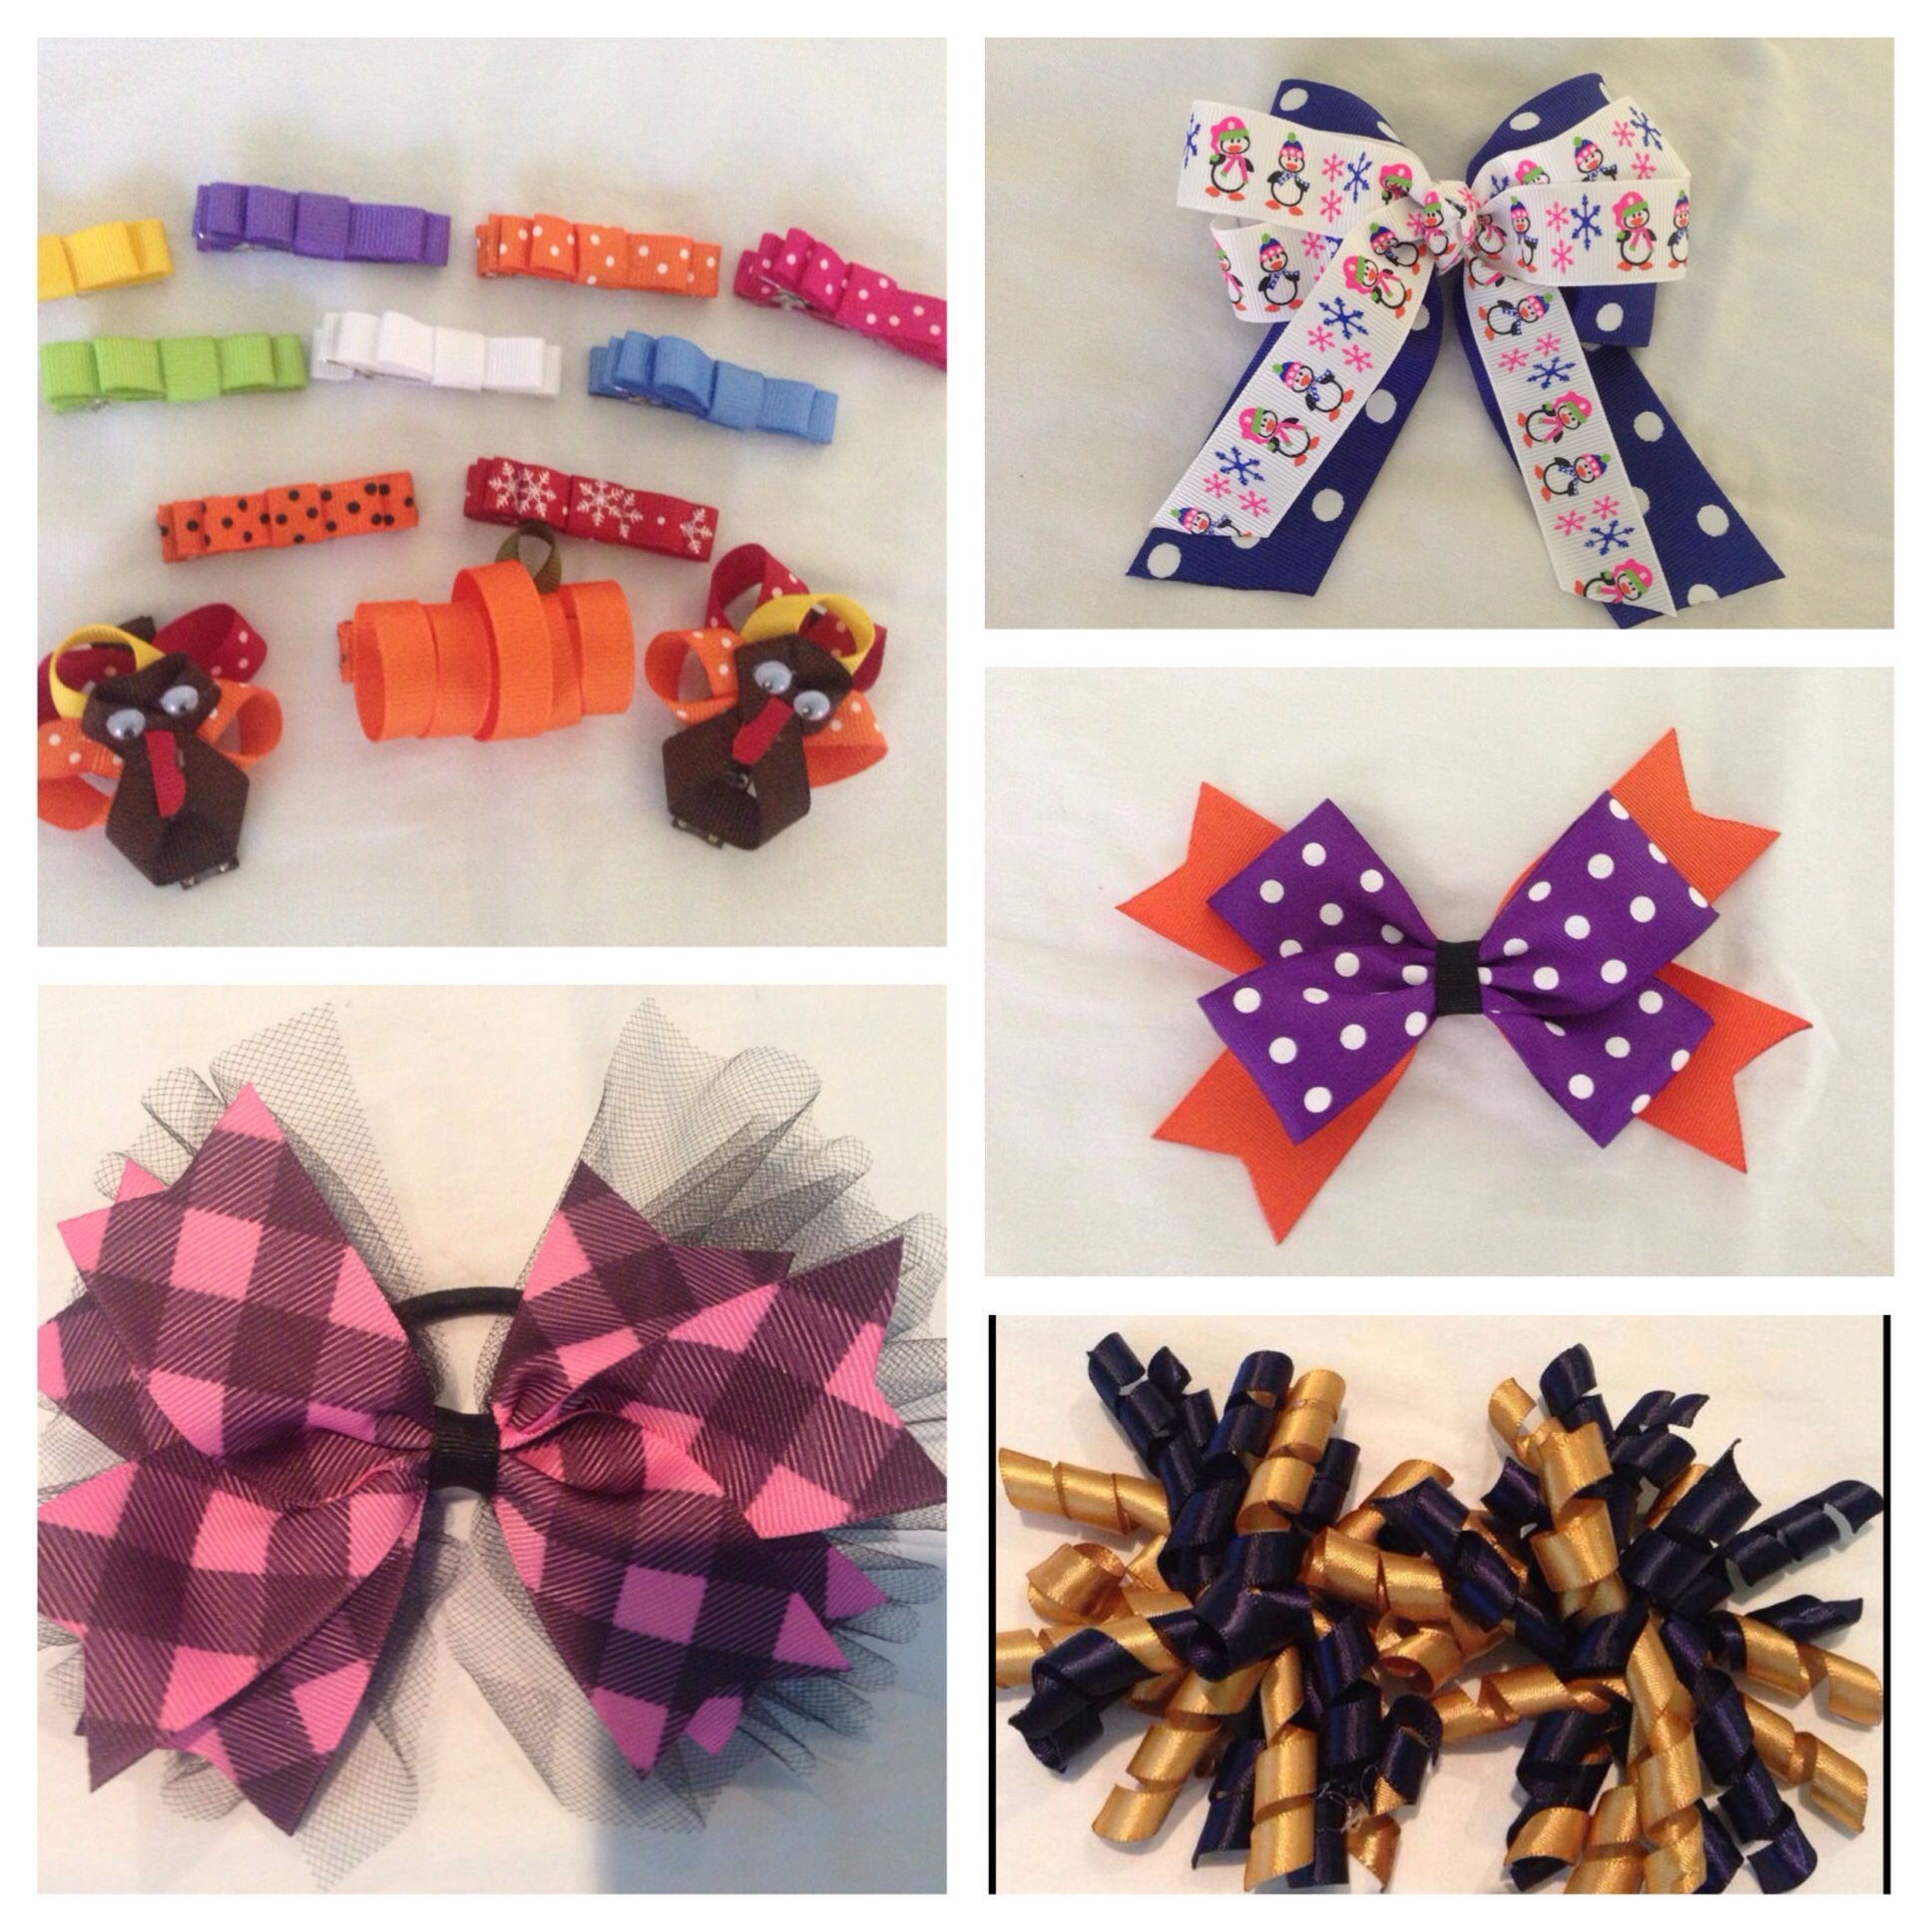 Check Out My Facebook Page Monkee Bowz I Make Custom Hair Bows For Any Occasion Lots Of Different Styles And Ribbon C Custom Hair Bow Bows Hair Bows